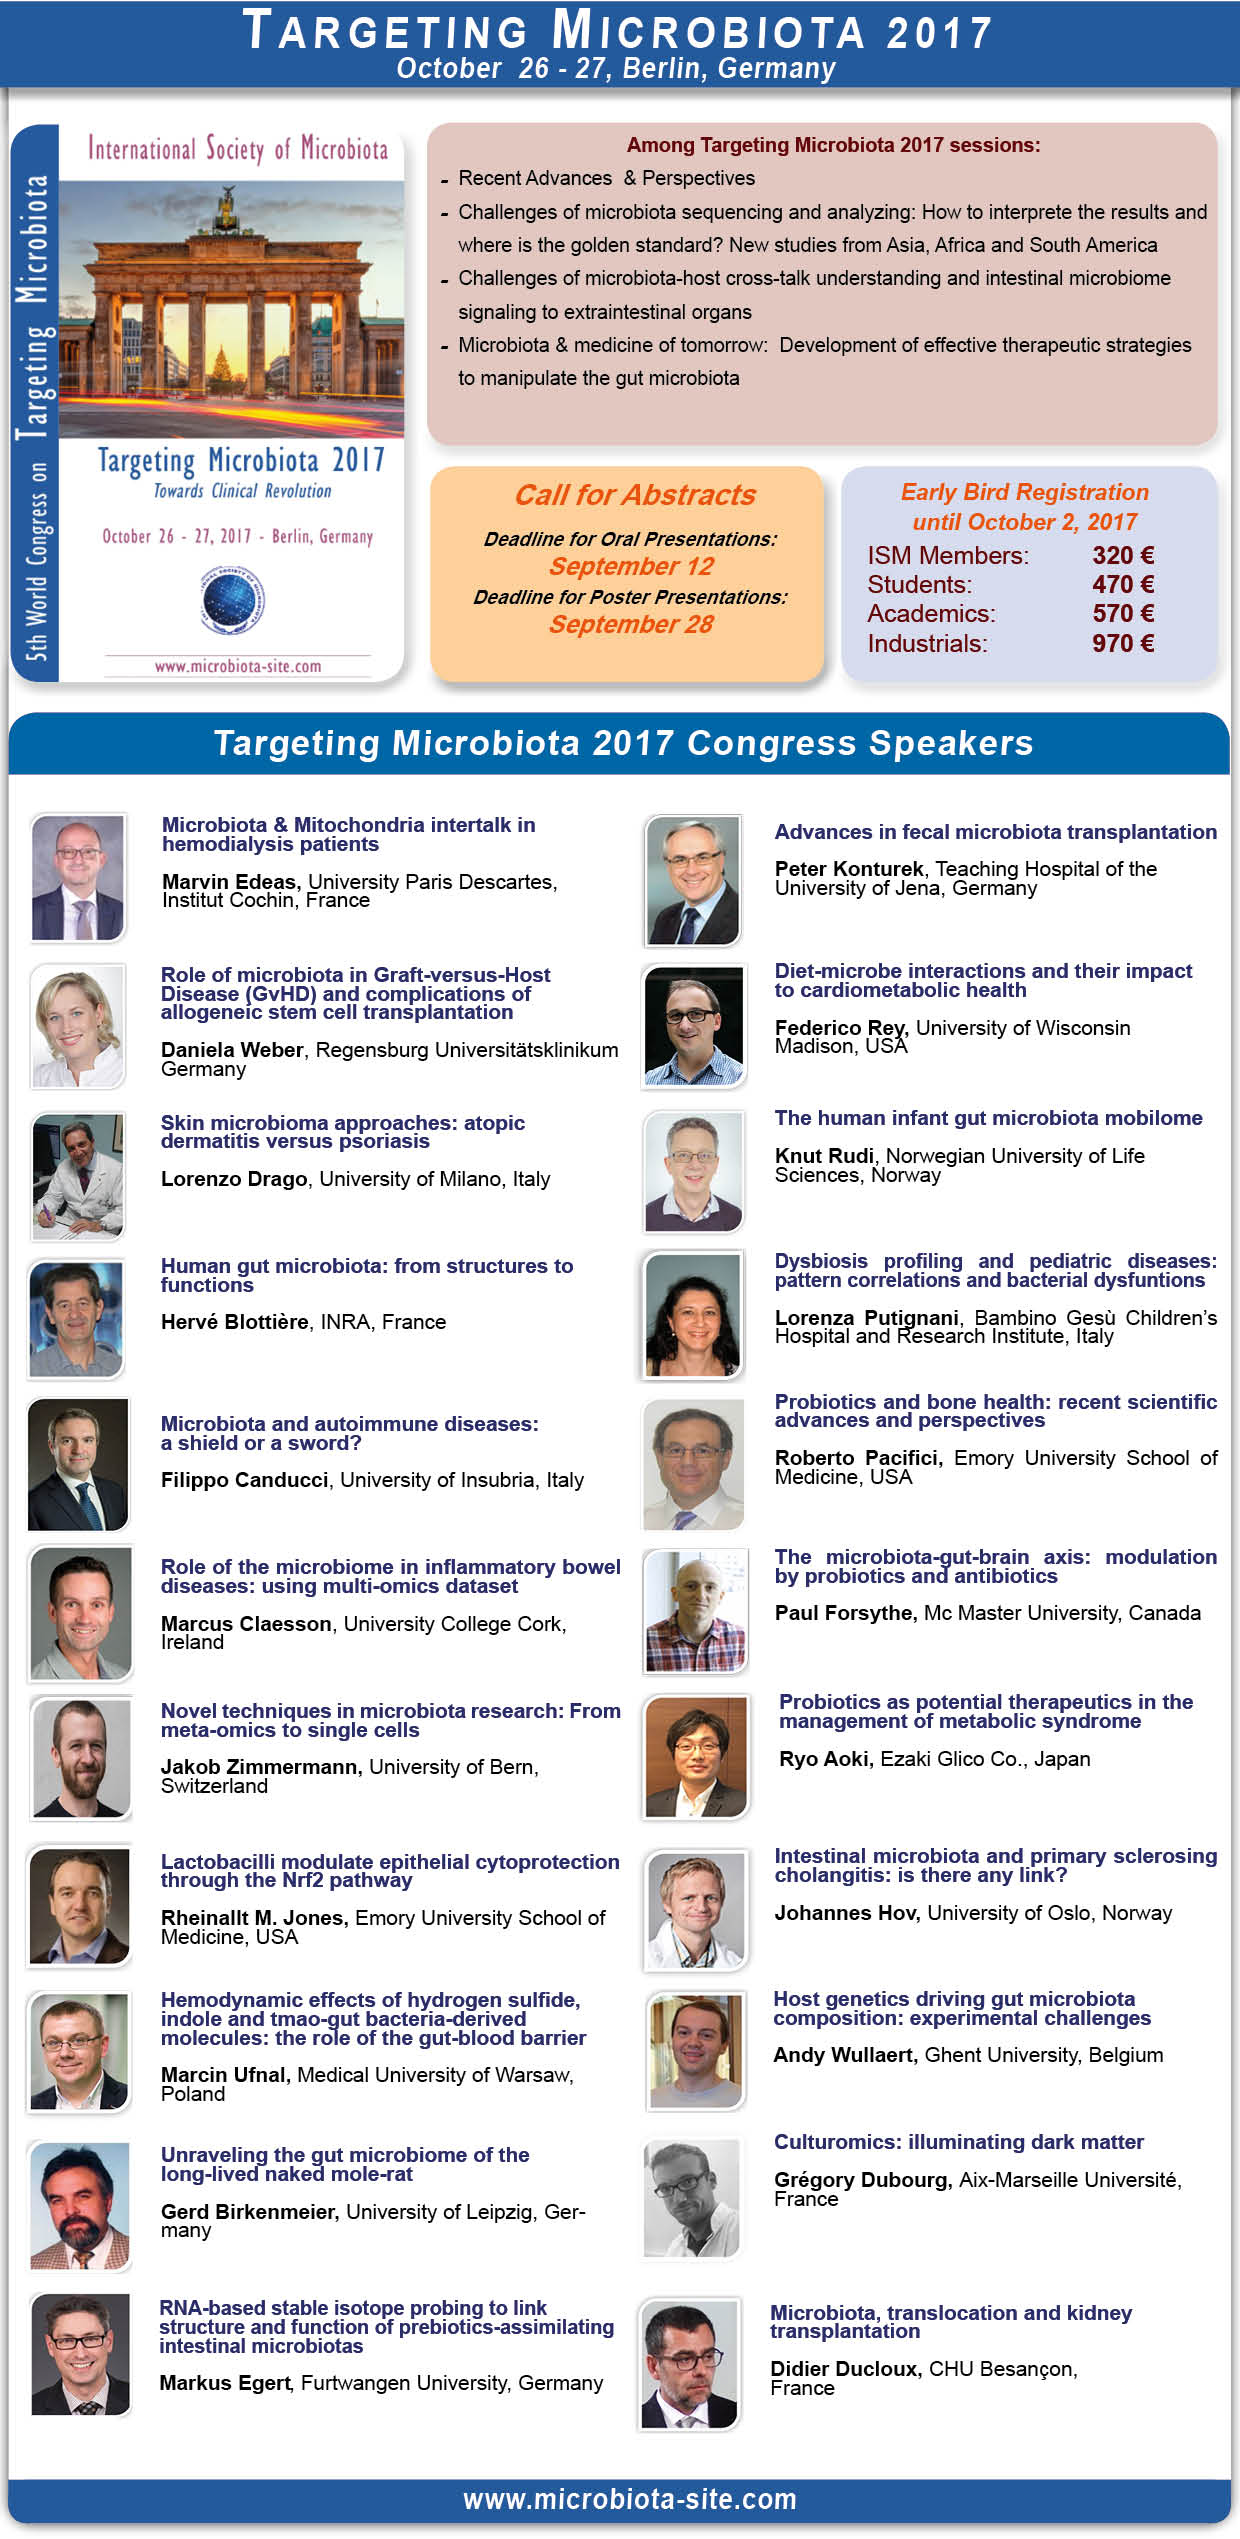 Targeting Microbiota Speakers cover 1408